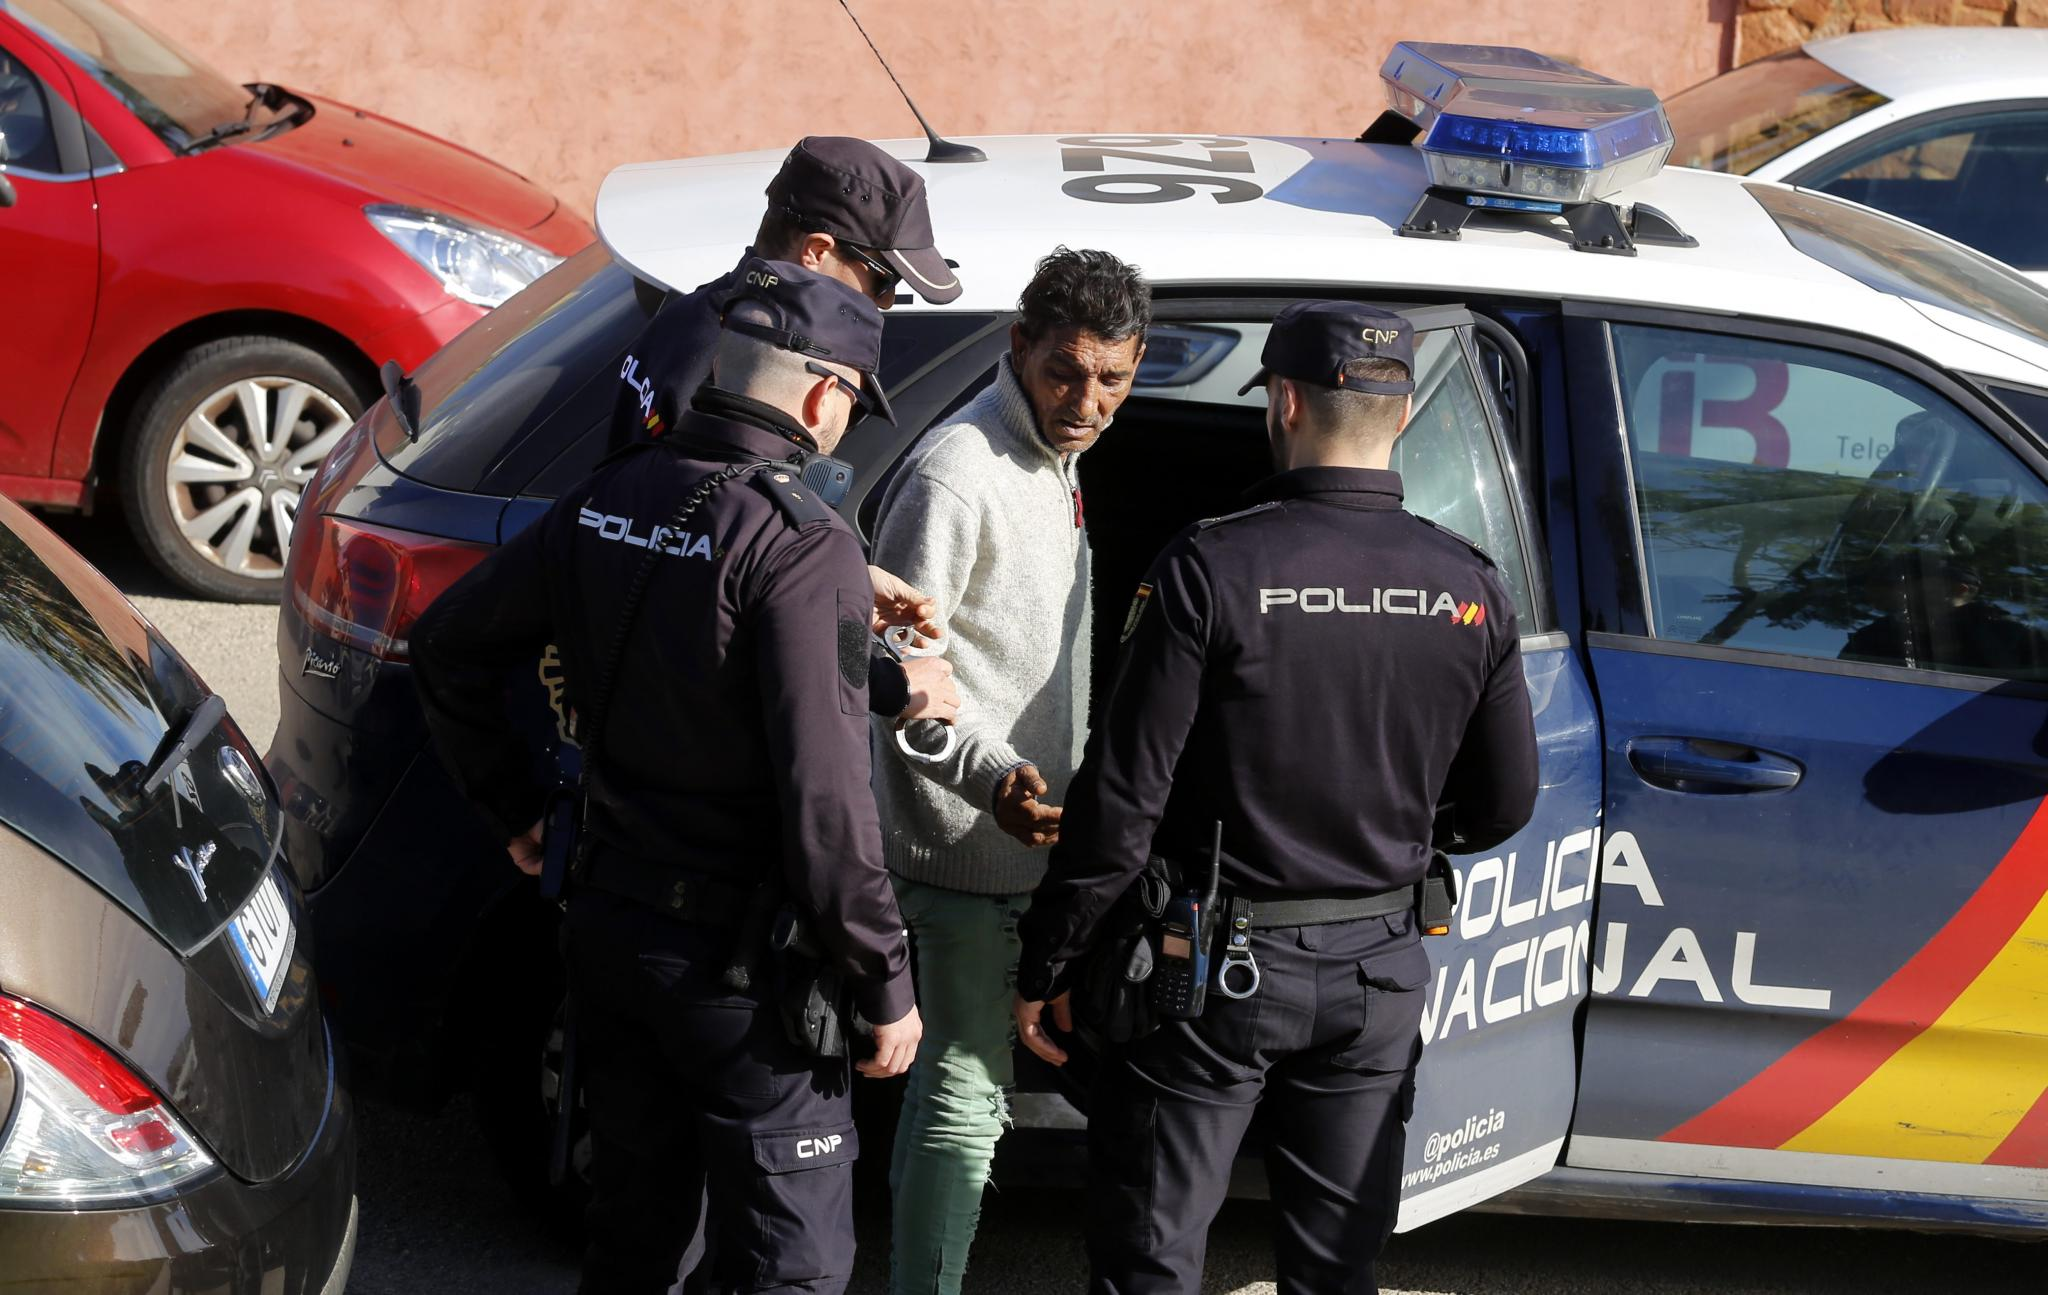 A man has been arrested for allegedly setting alight to a woman in Palma